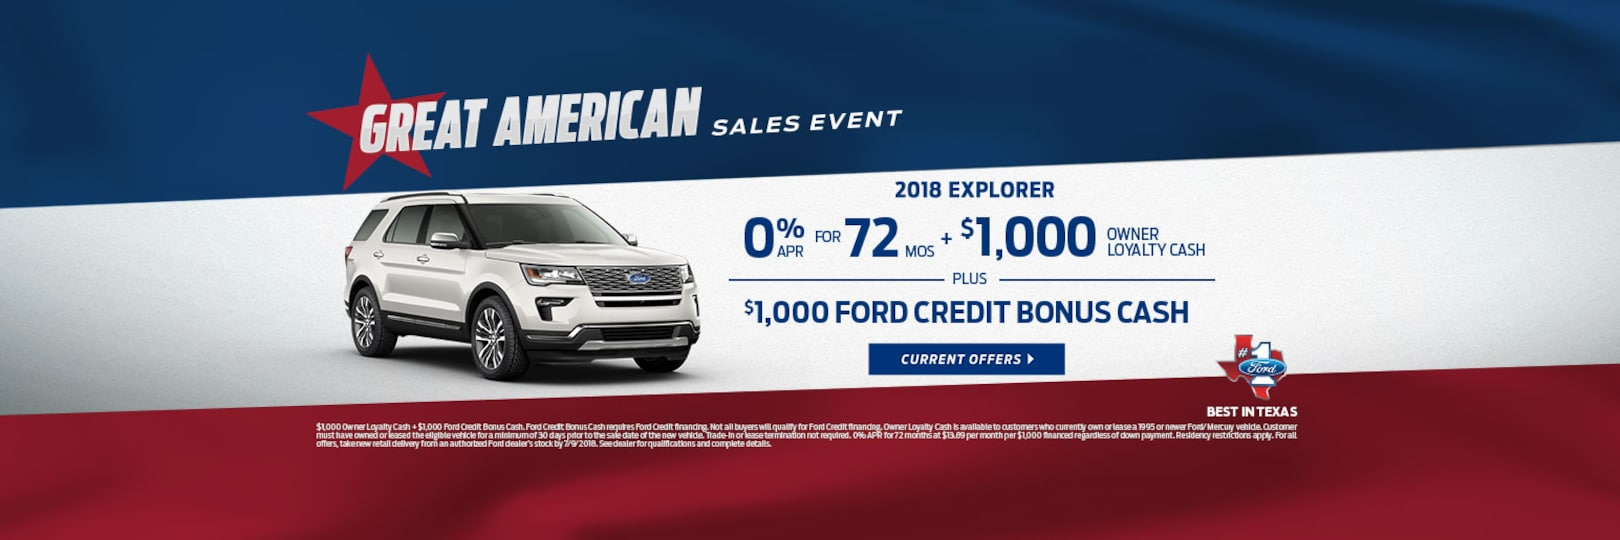 carrollton ford header models tx choice near dealerships of buy engines in dealer three escape me four the